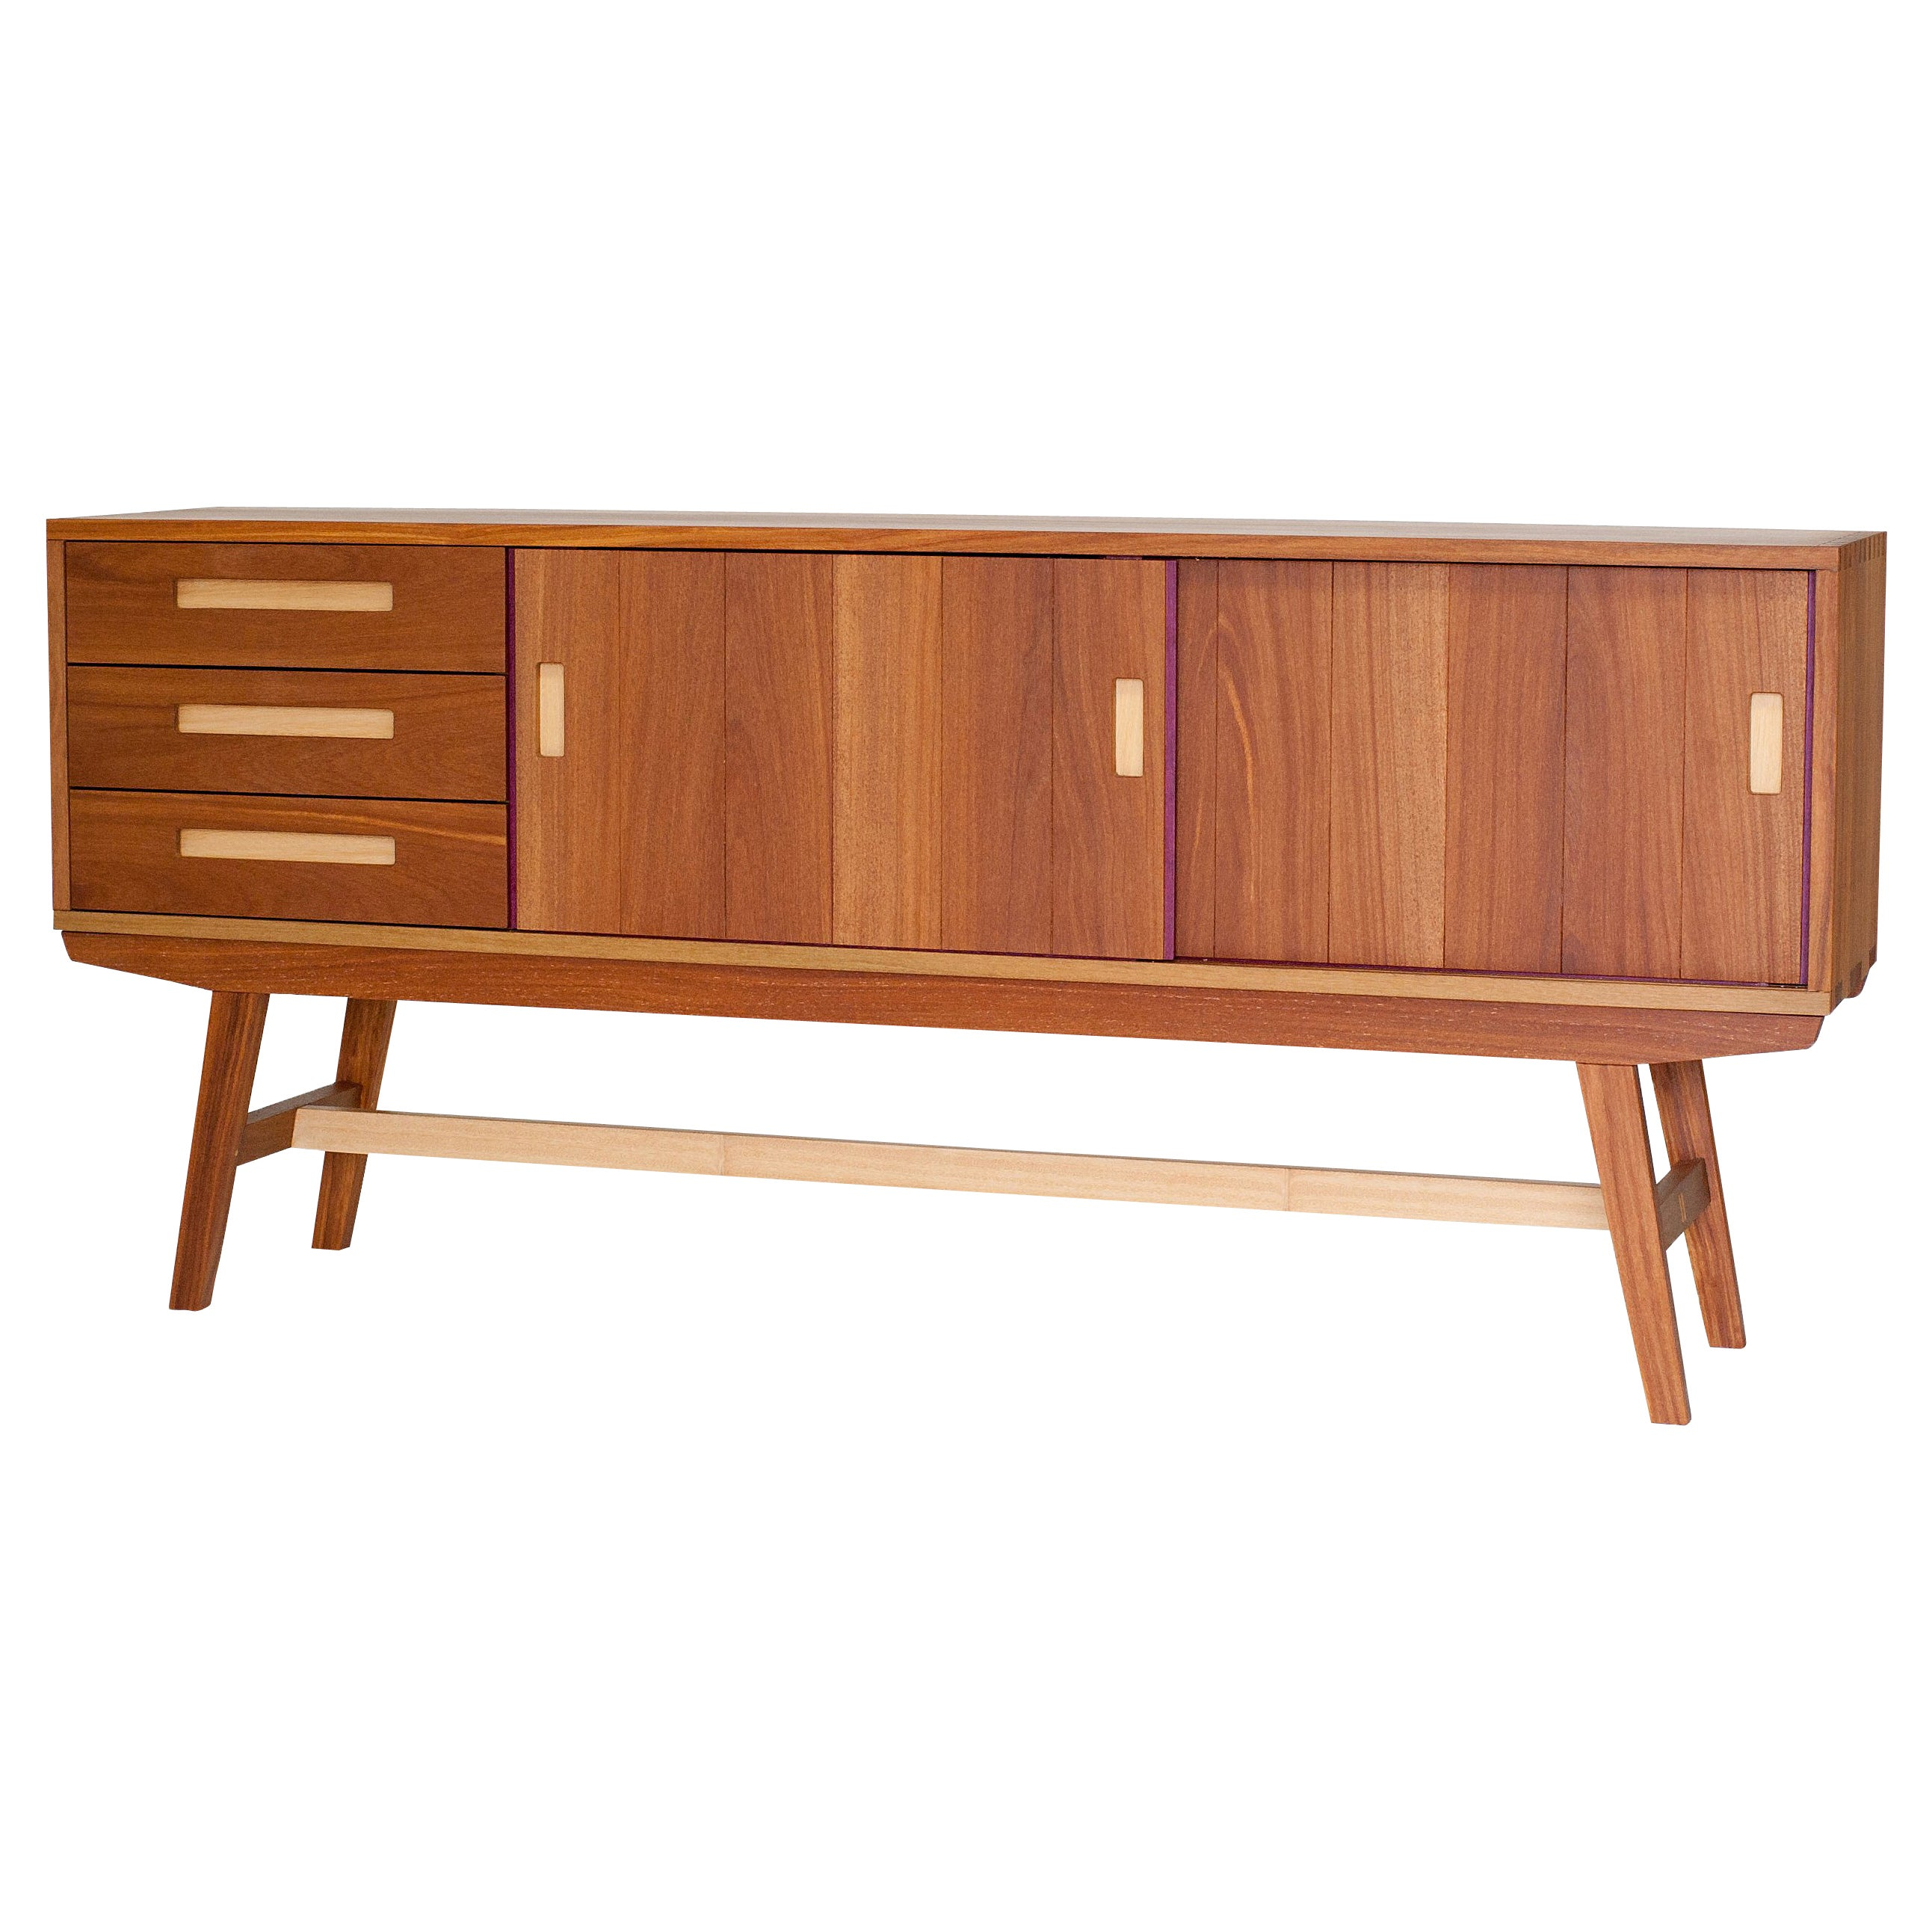 Credenza Buffet Handcrafted in Brazilian Hardwood